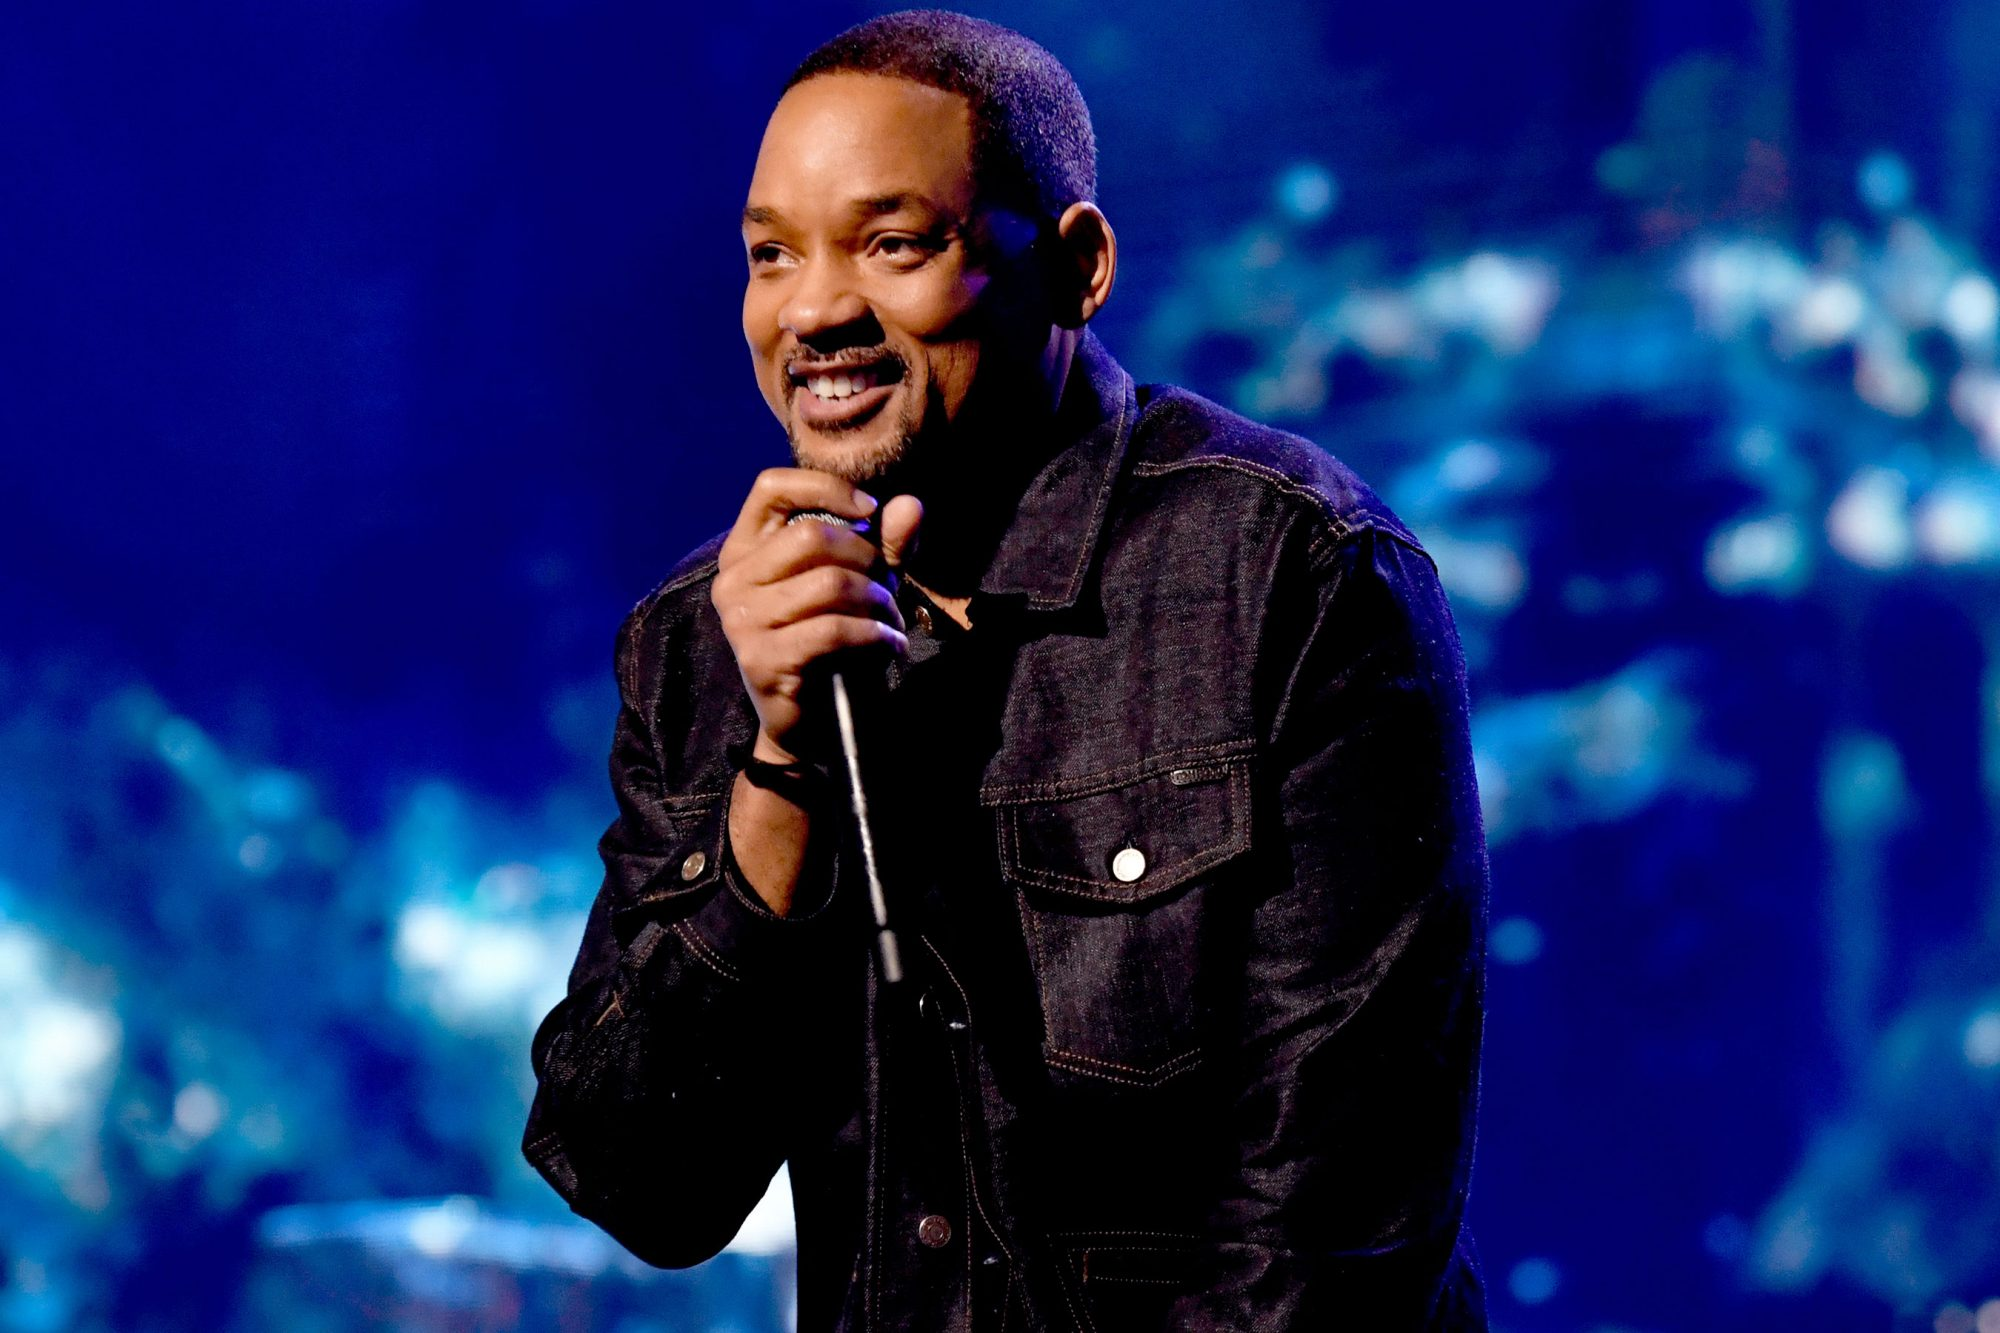 Will Smith speaks onstage at Nickelodeon's 2019 Kids' Choice Awards